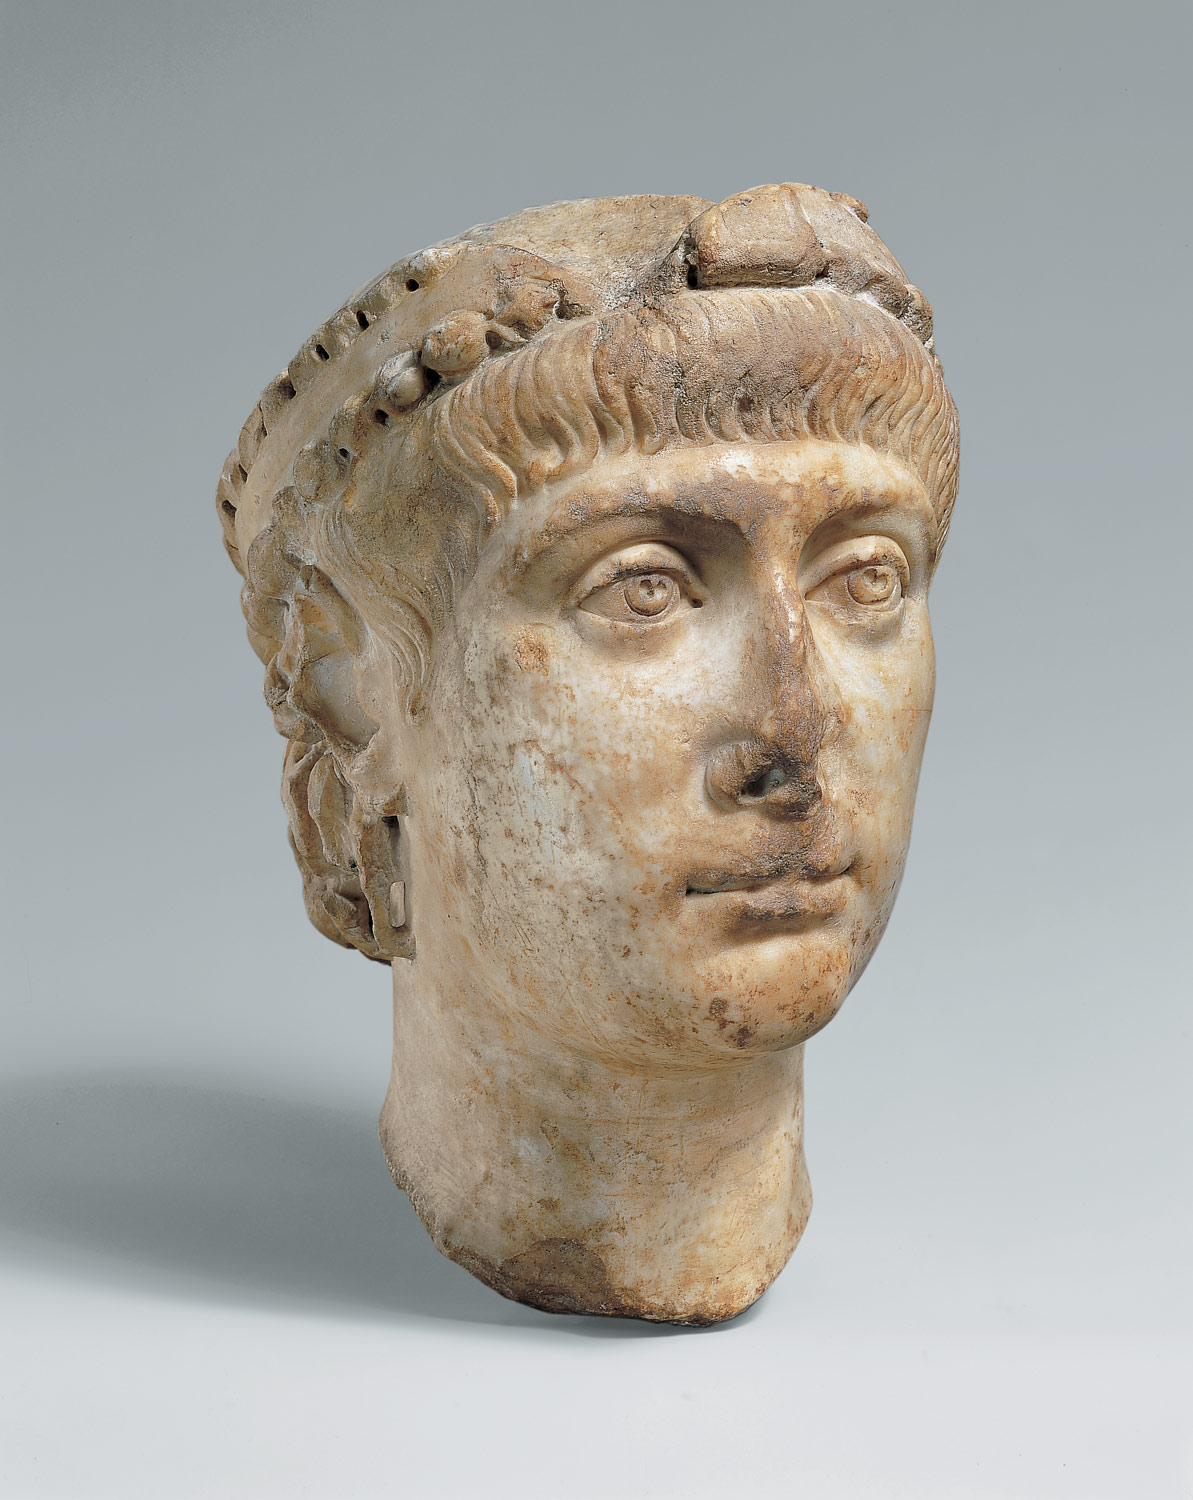 Head of Emperor Constans (r. 337-350)